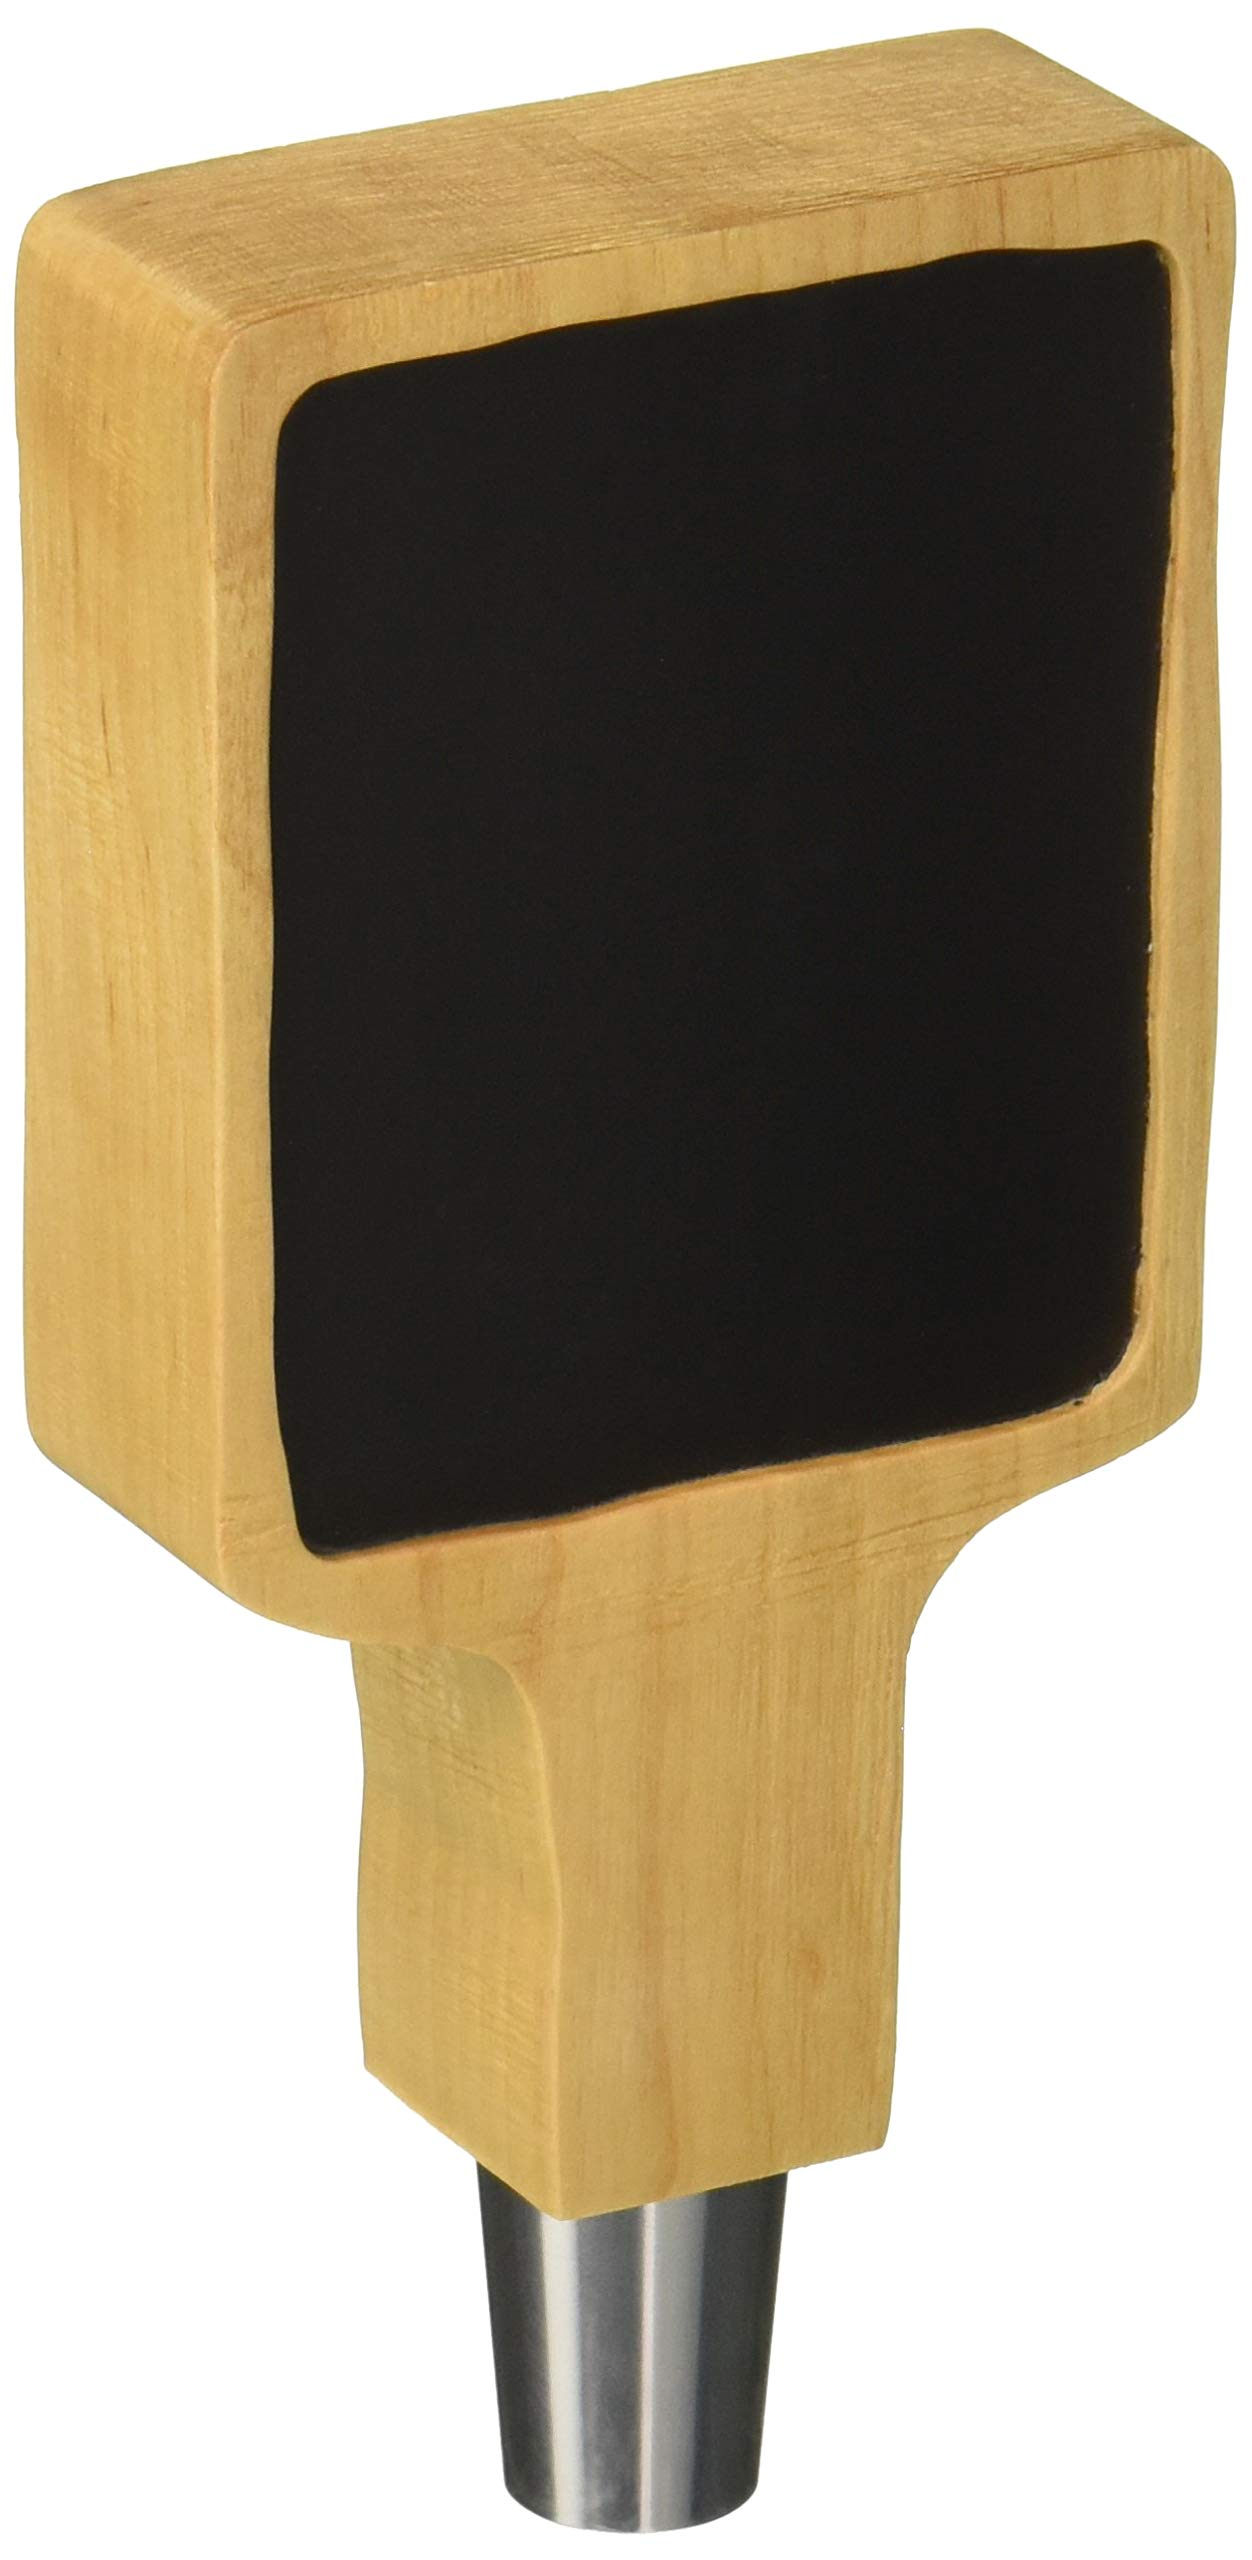 Rustic Carved Tap Handle with Chalkboard Surface - Short 6'' - Tap BoardsTM